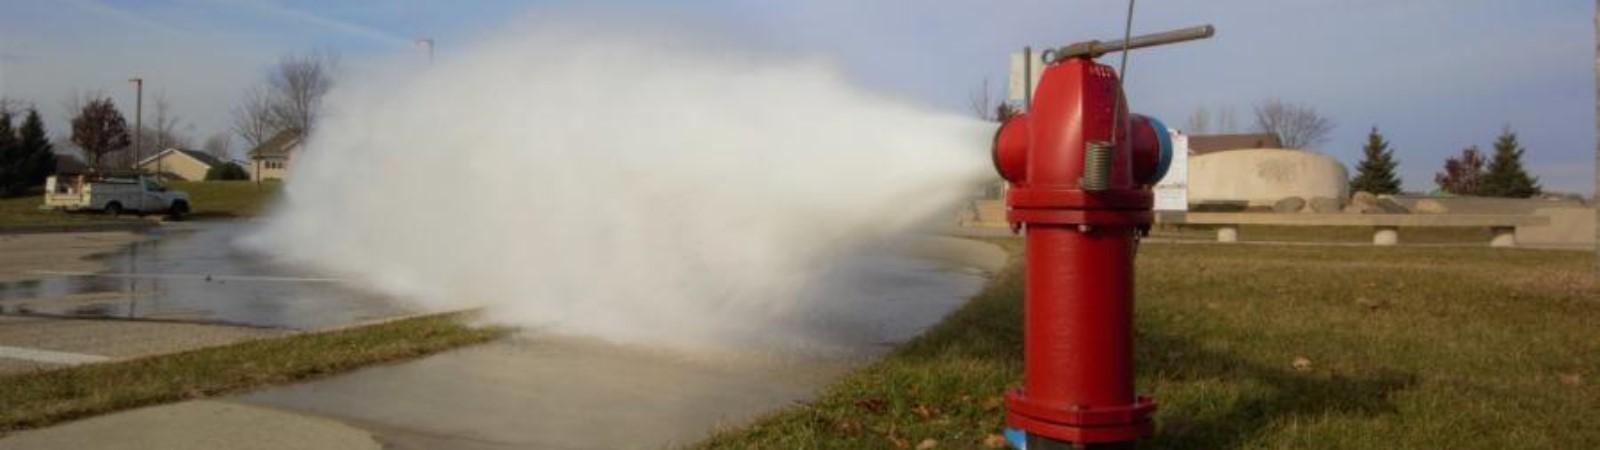 Open fire hydrant spraying water during flushing